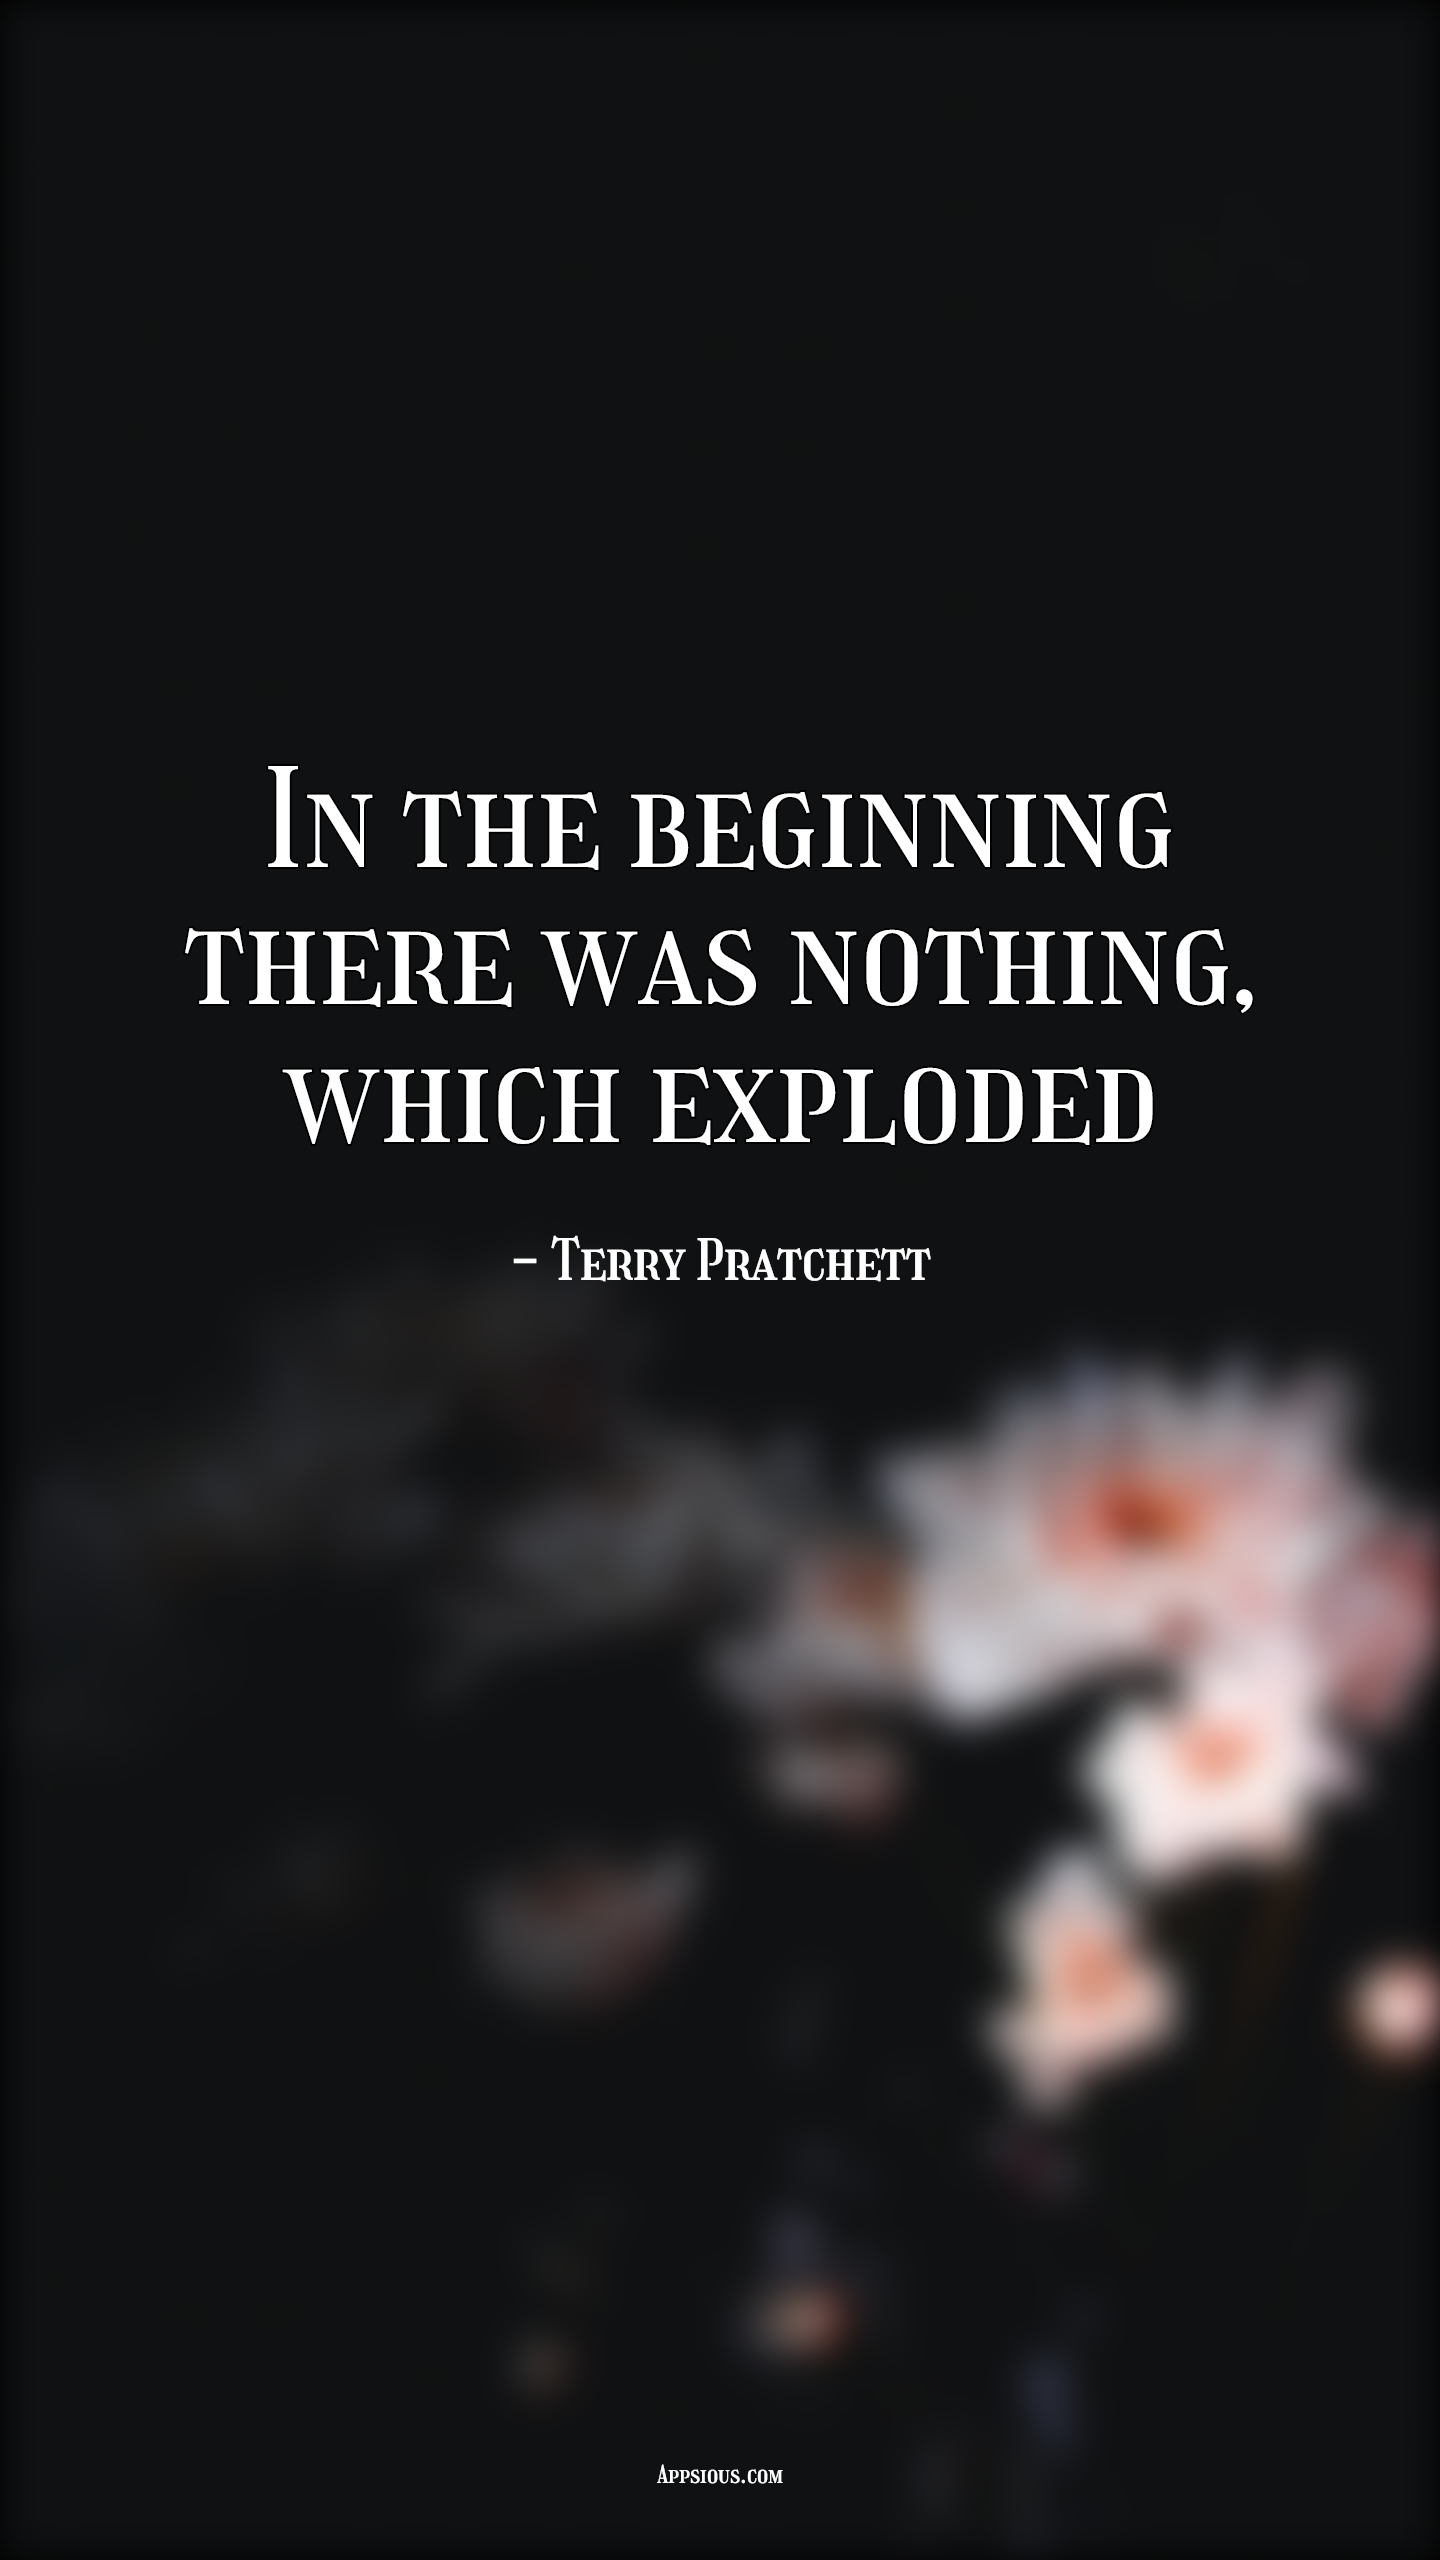 In the beginning there was nothing, which exploded